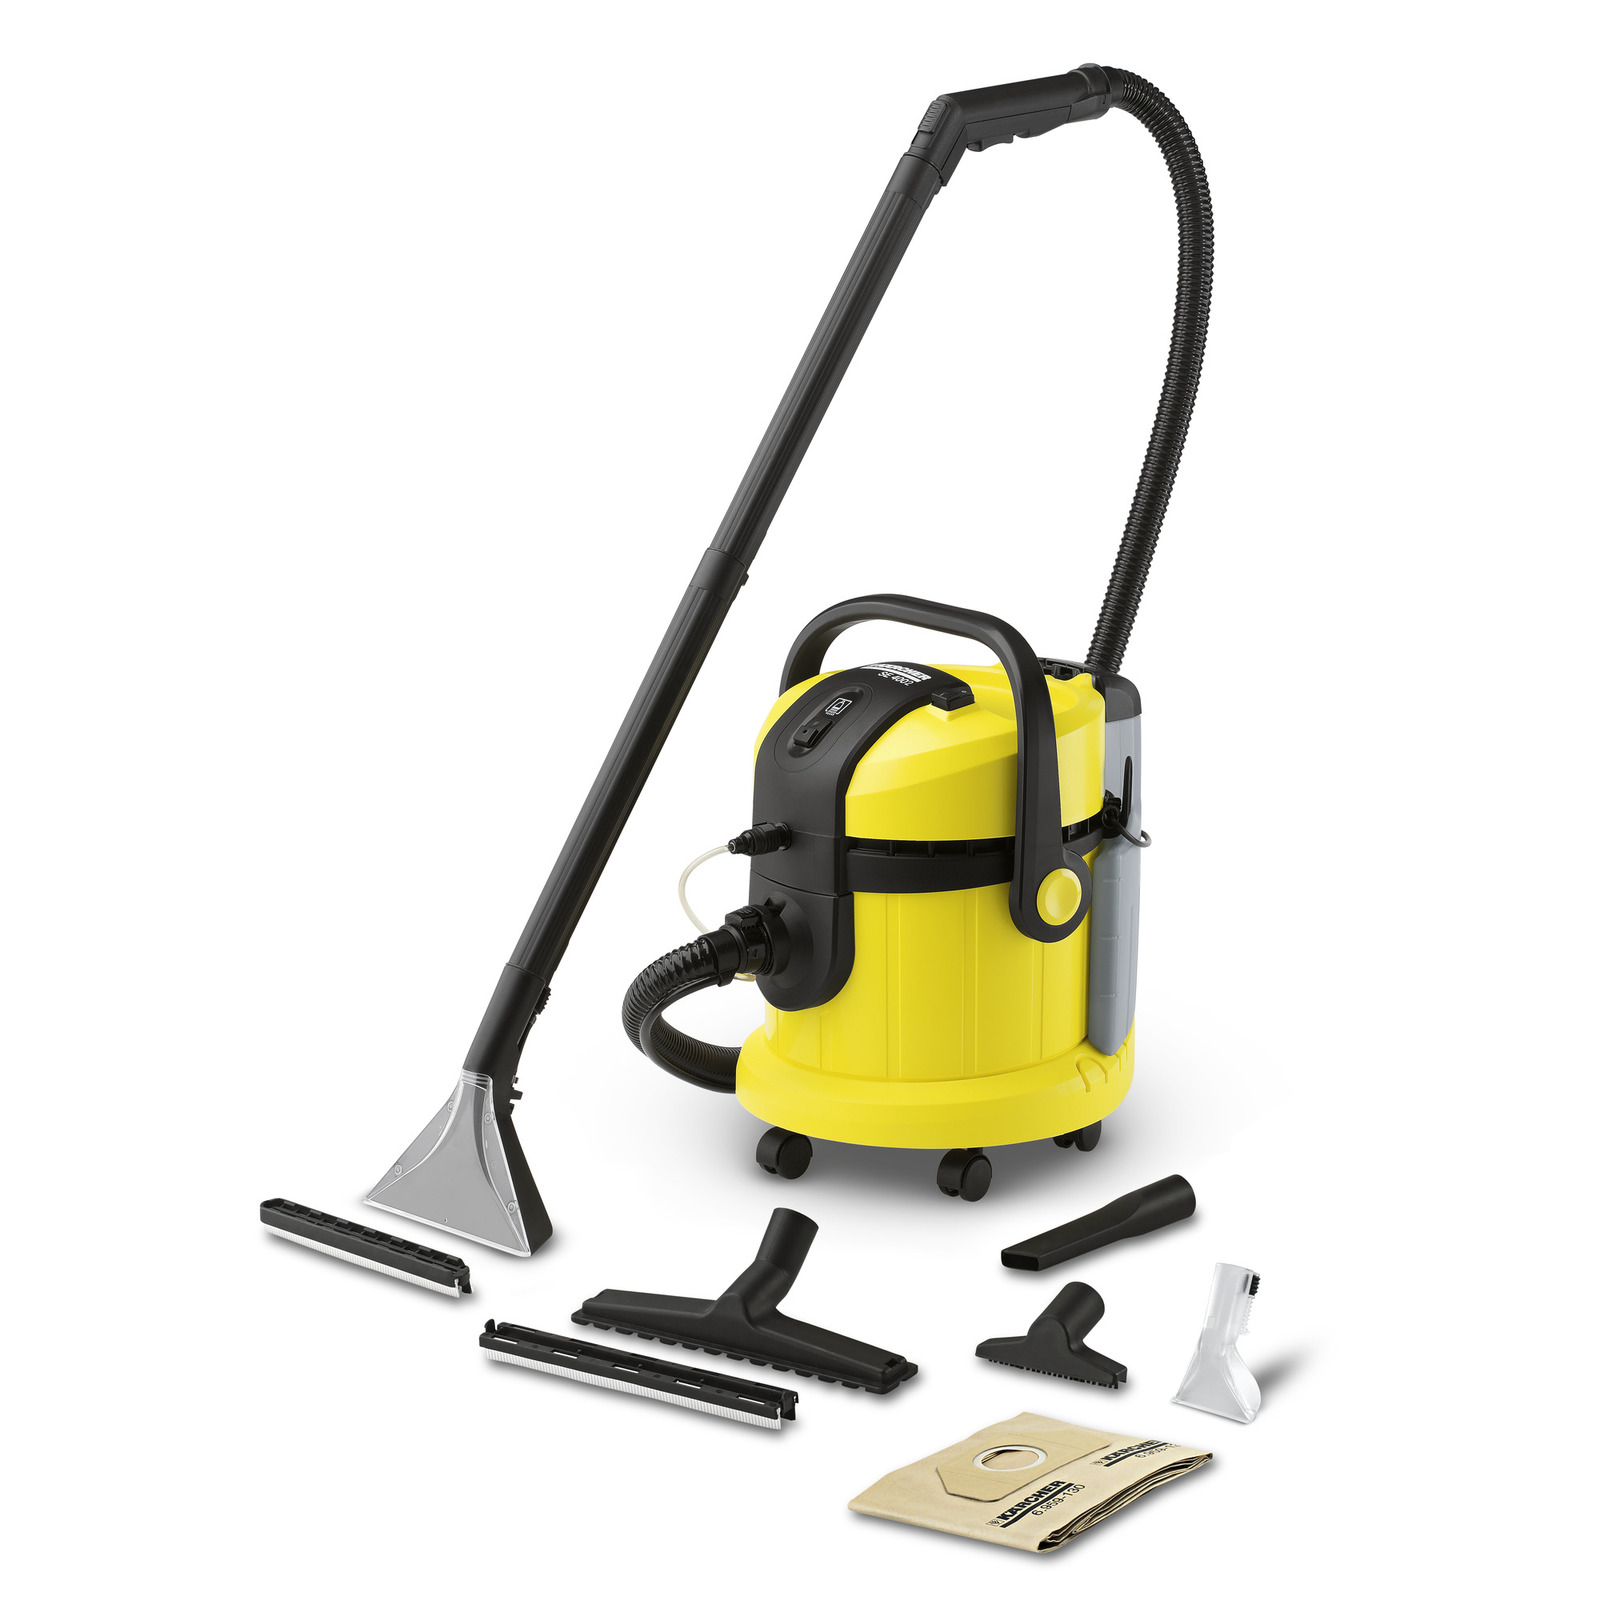 Includes 2-in-1 comfort system with integrated spray vacuum hose and spray extraction nozzle for upholstery cleaning.